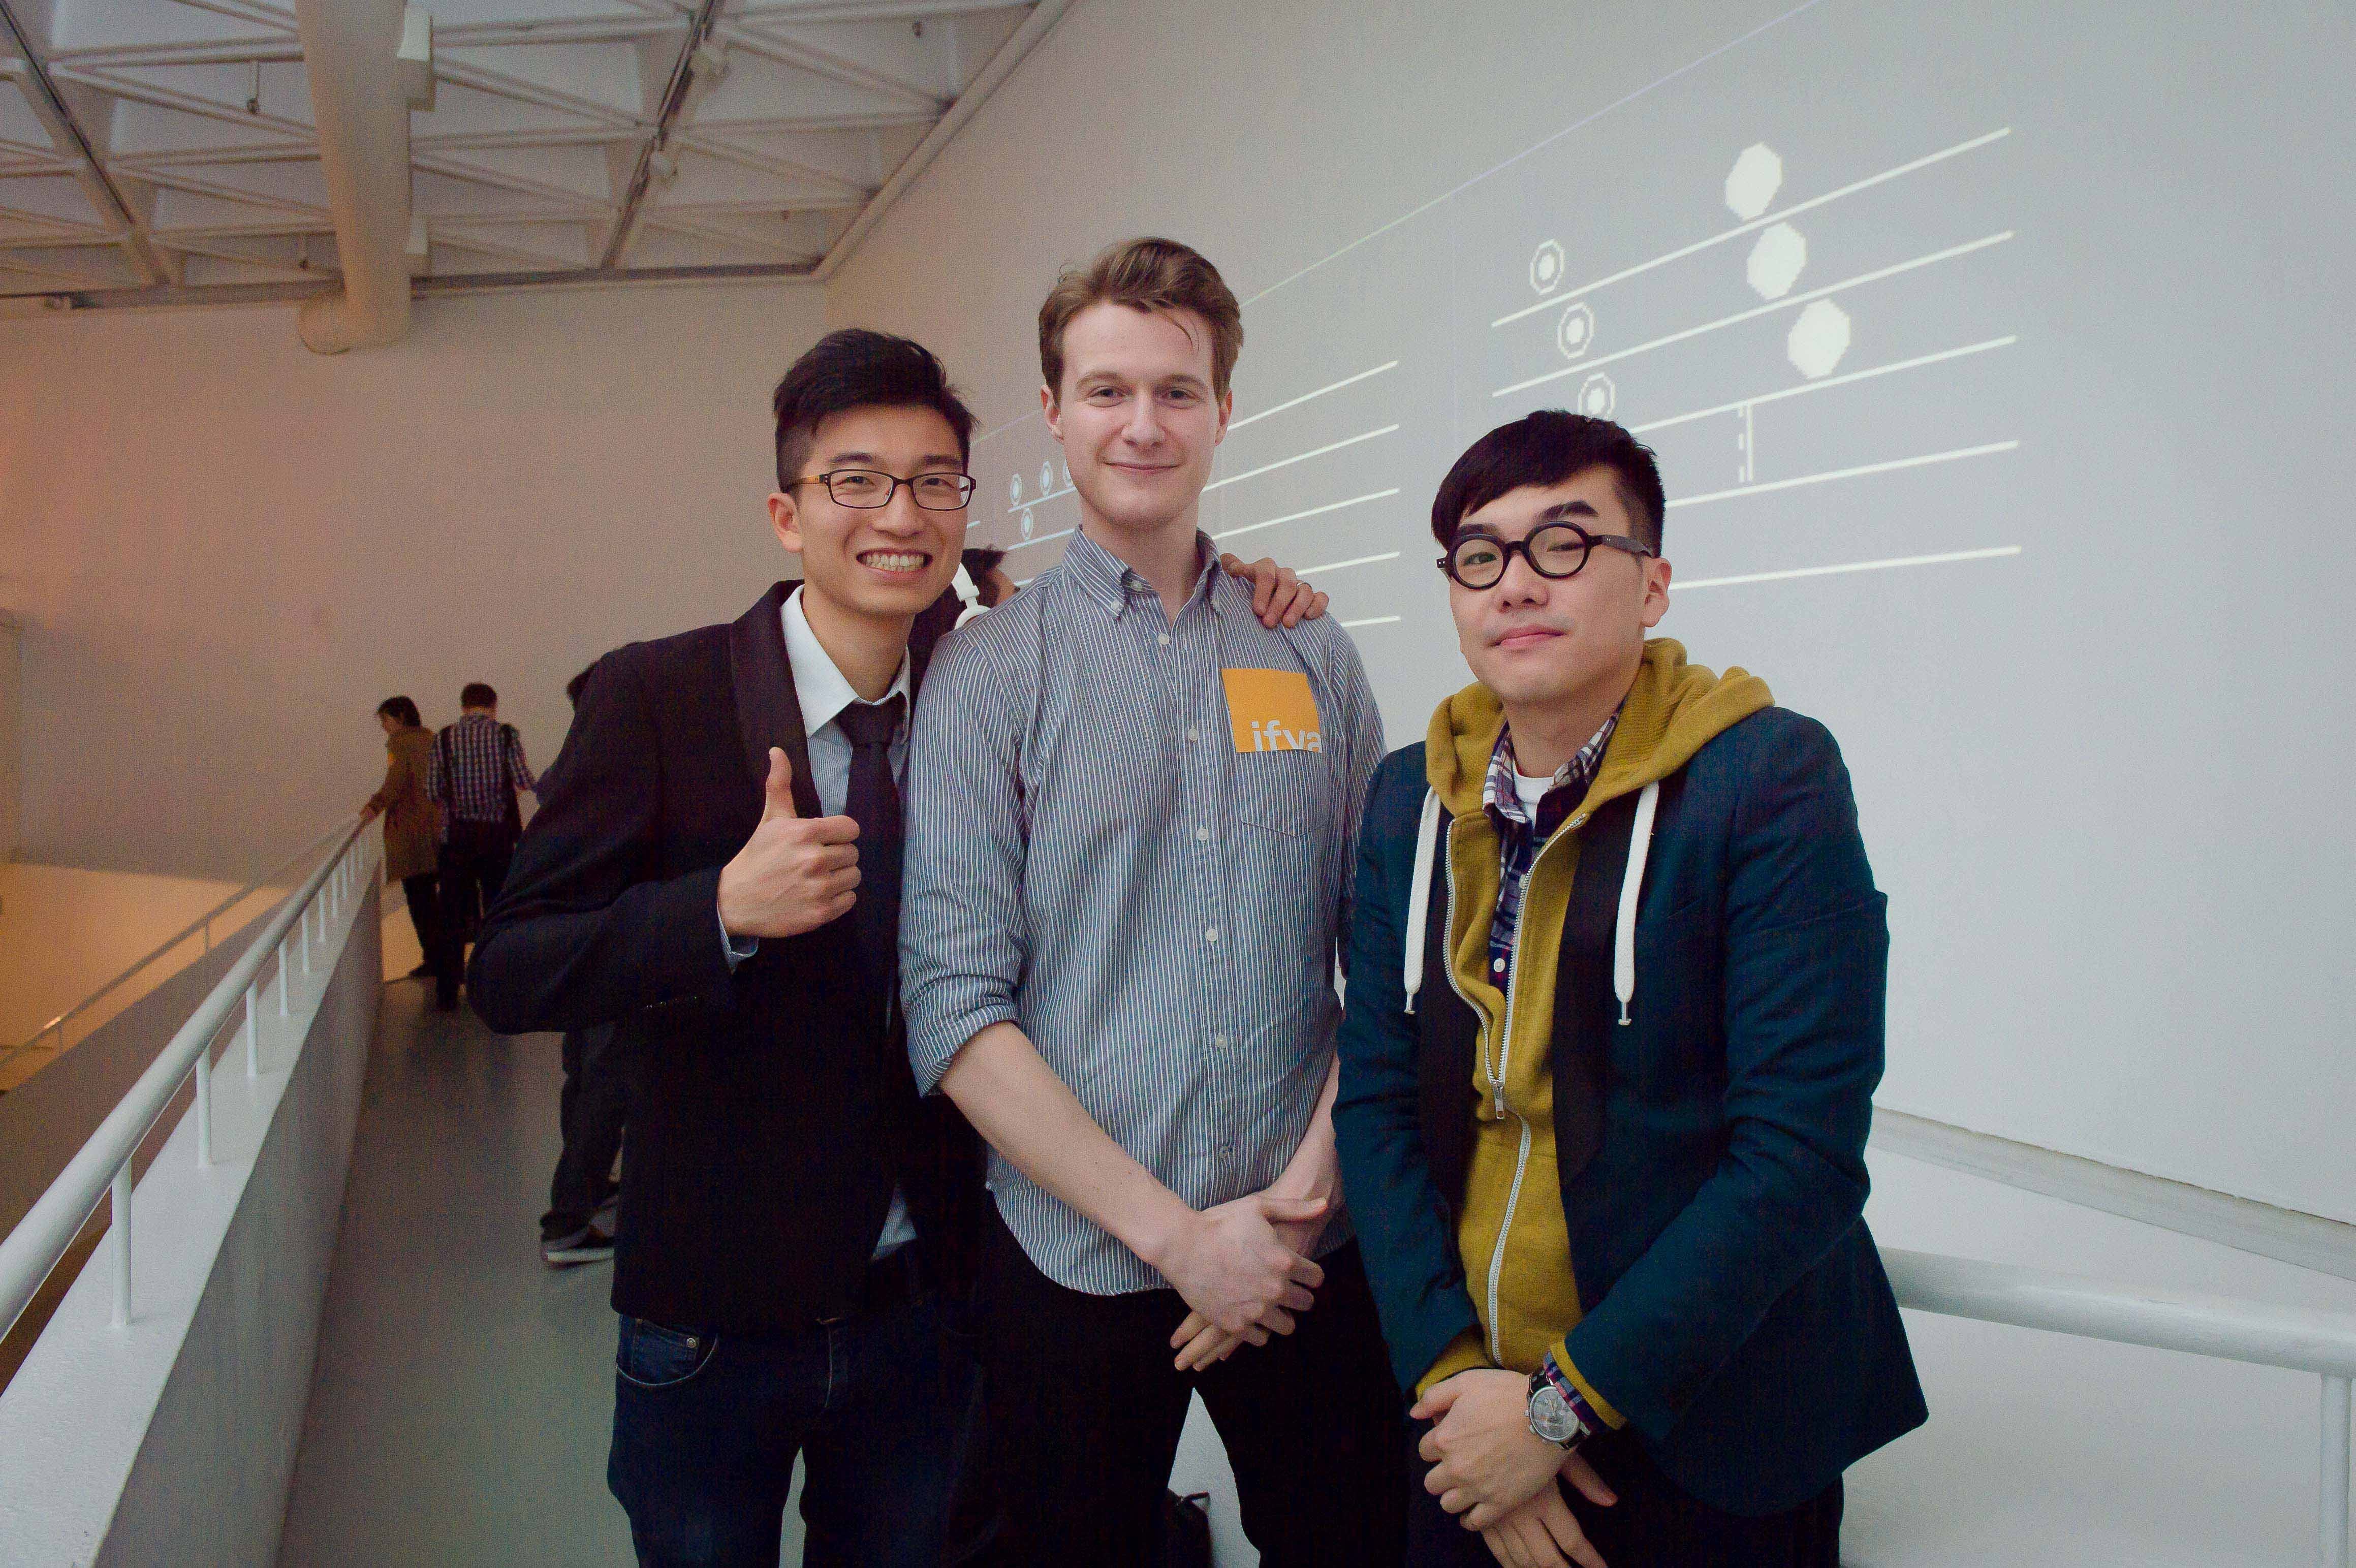 Tabor Robak took picture with Jeff Chow and Ivan Leung, the ifva finalists in front of their work, <i>Idea of Amplitude</i>.